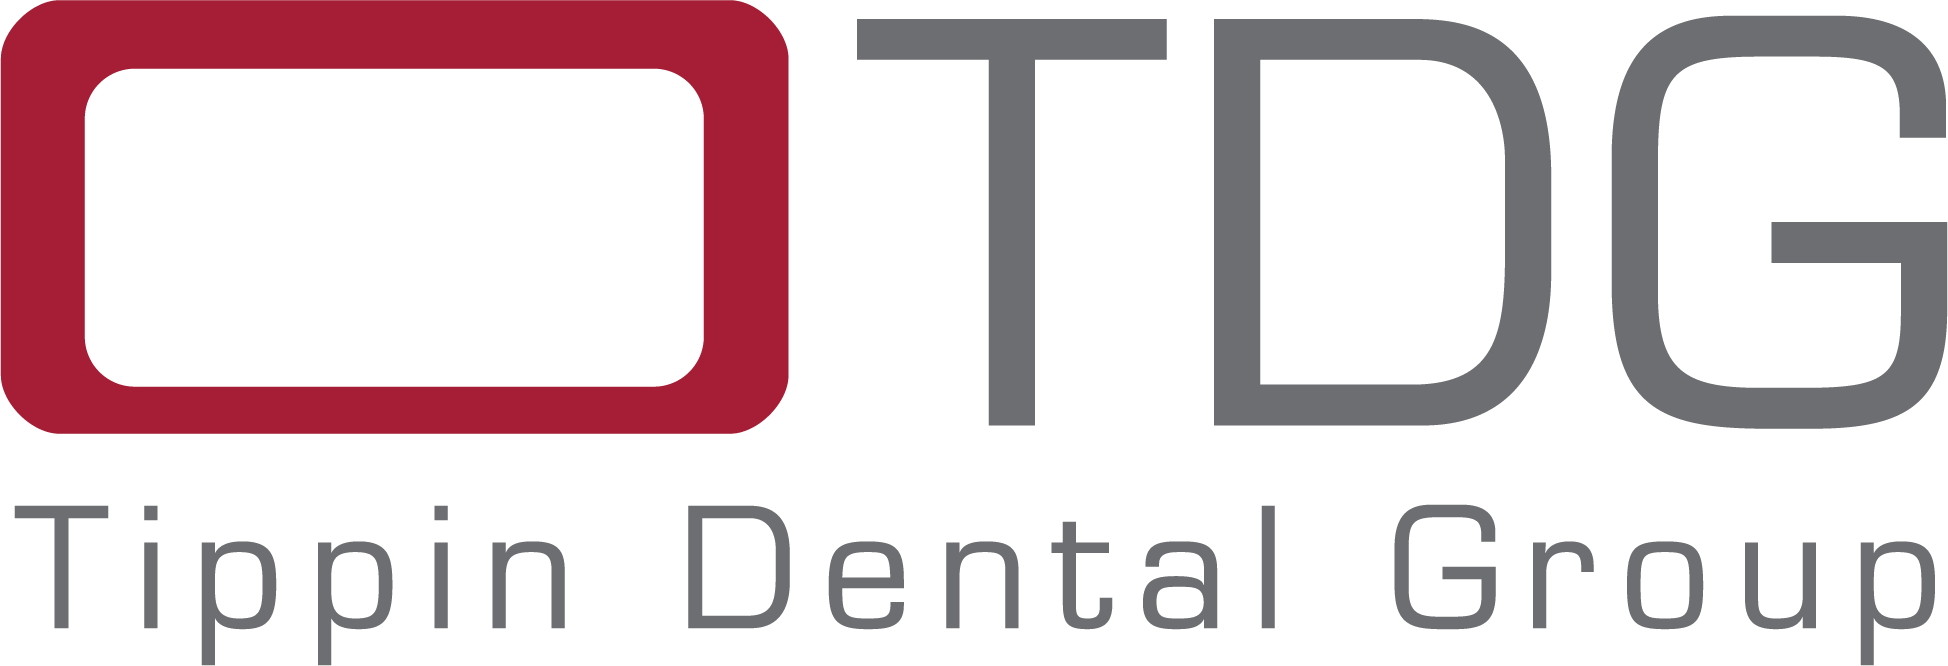 Tippin Dental Group